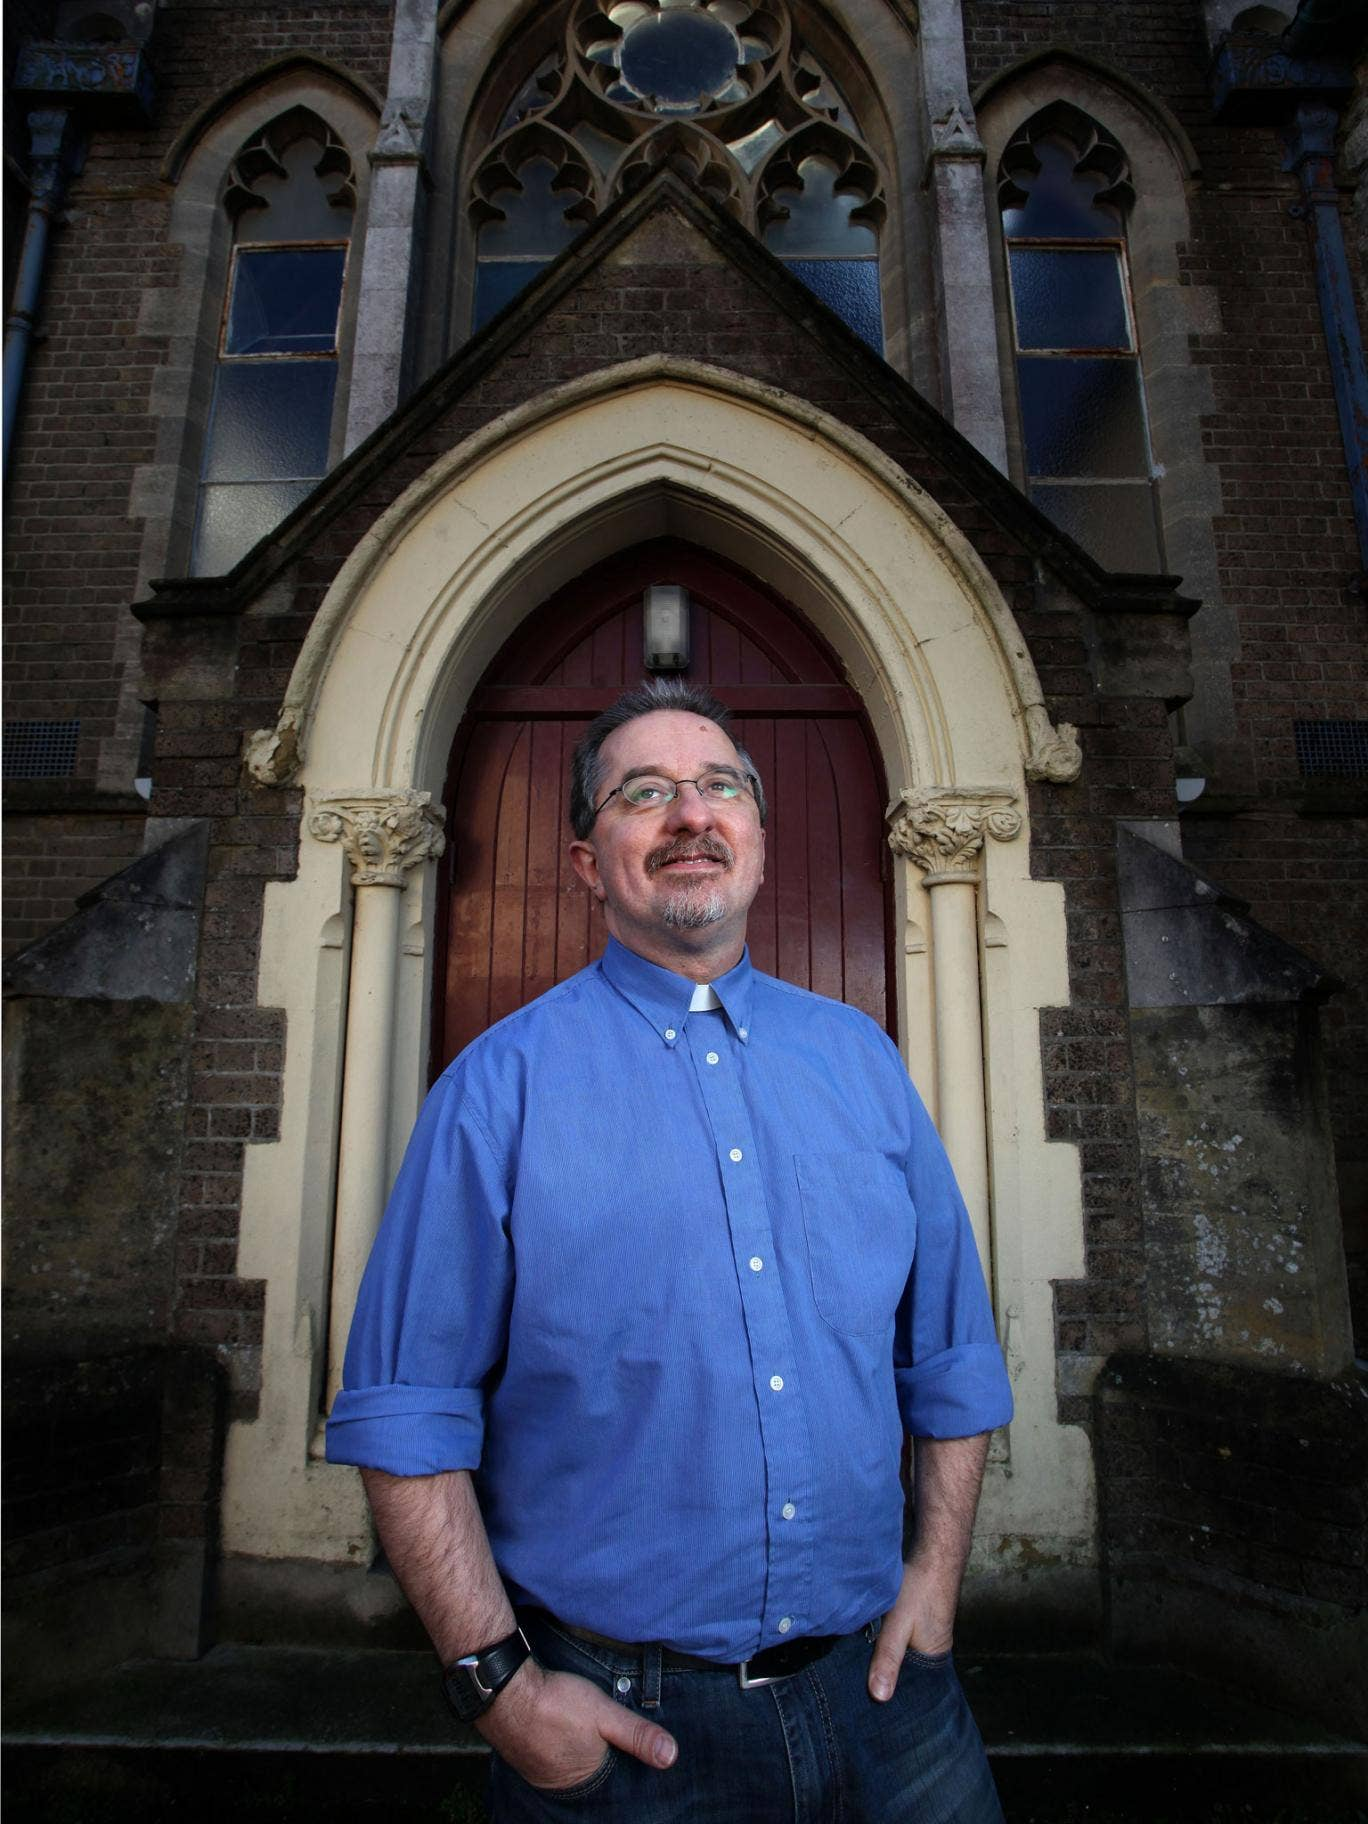 Benny Hazlehurst, who now works as a prison chaplain, at his local church in Dorchester